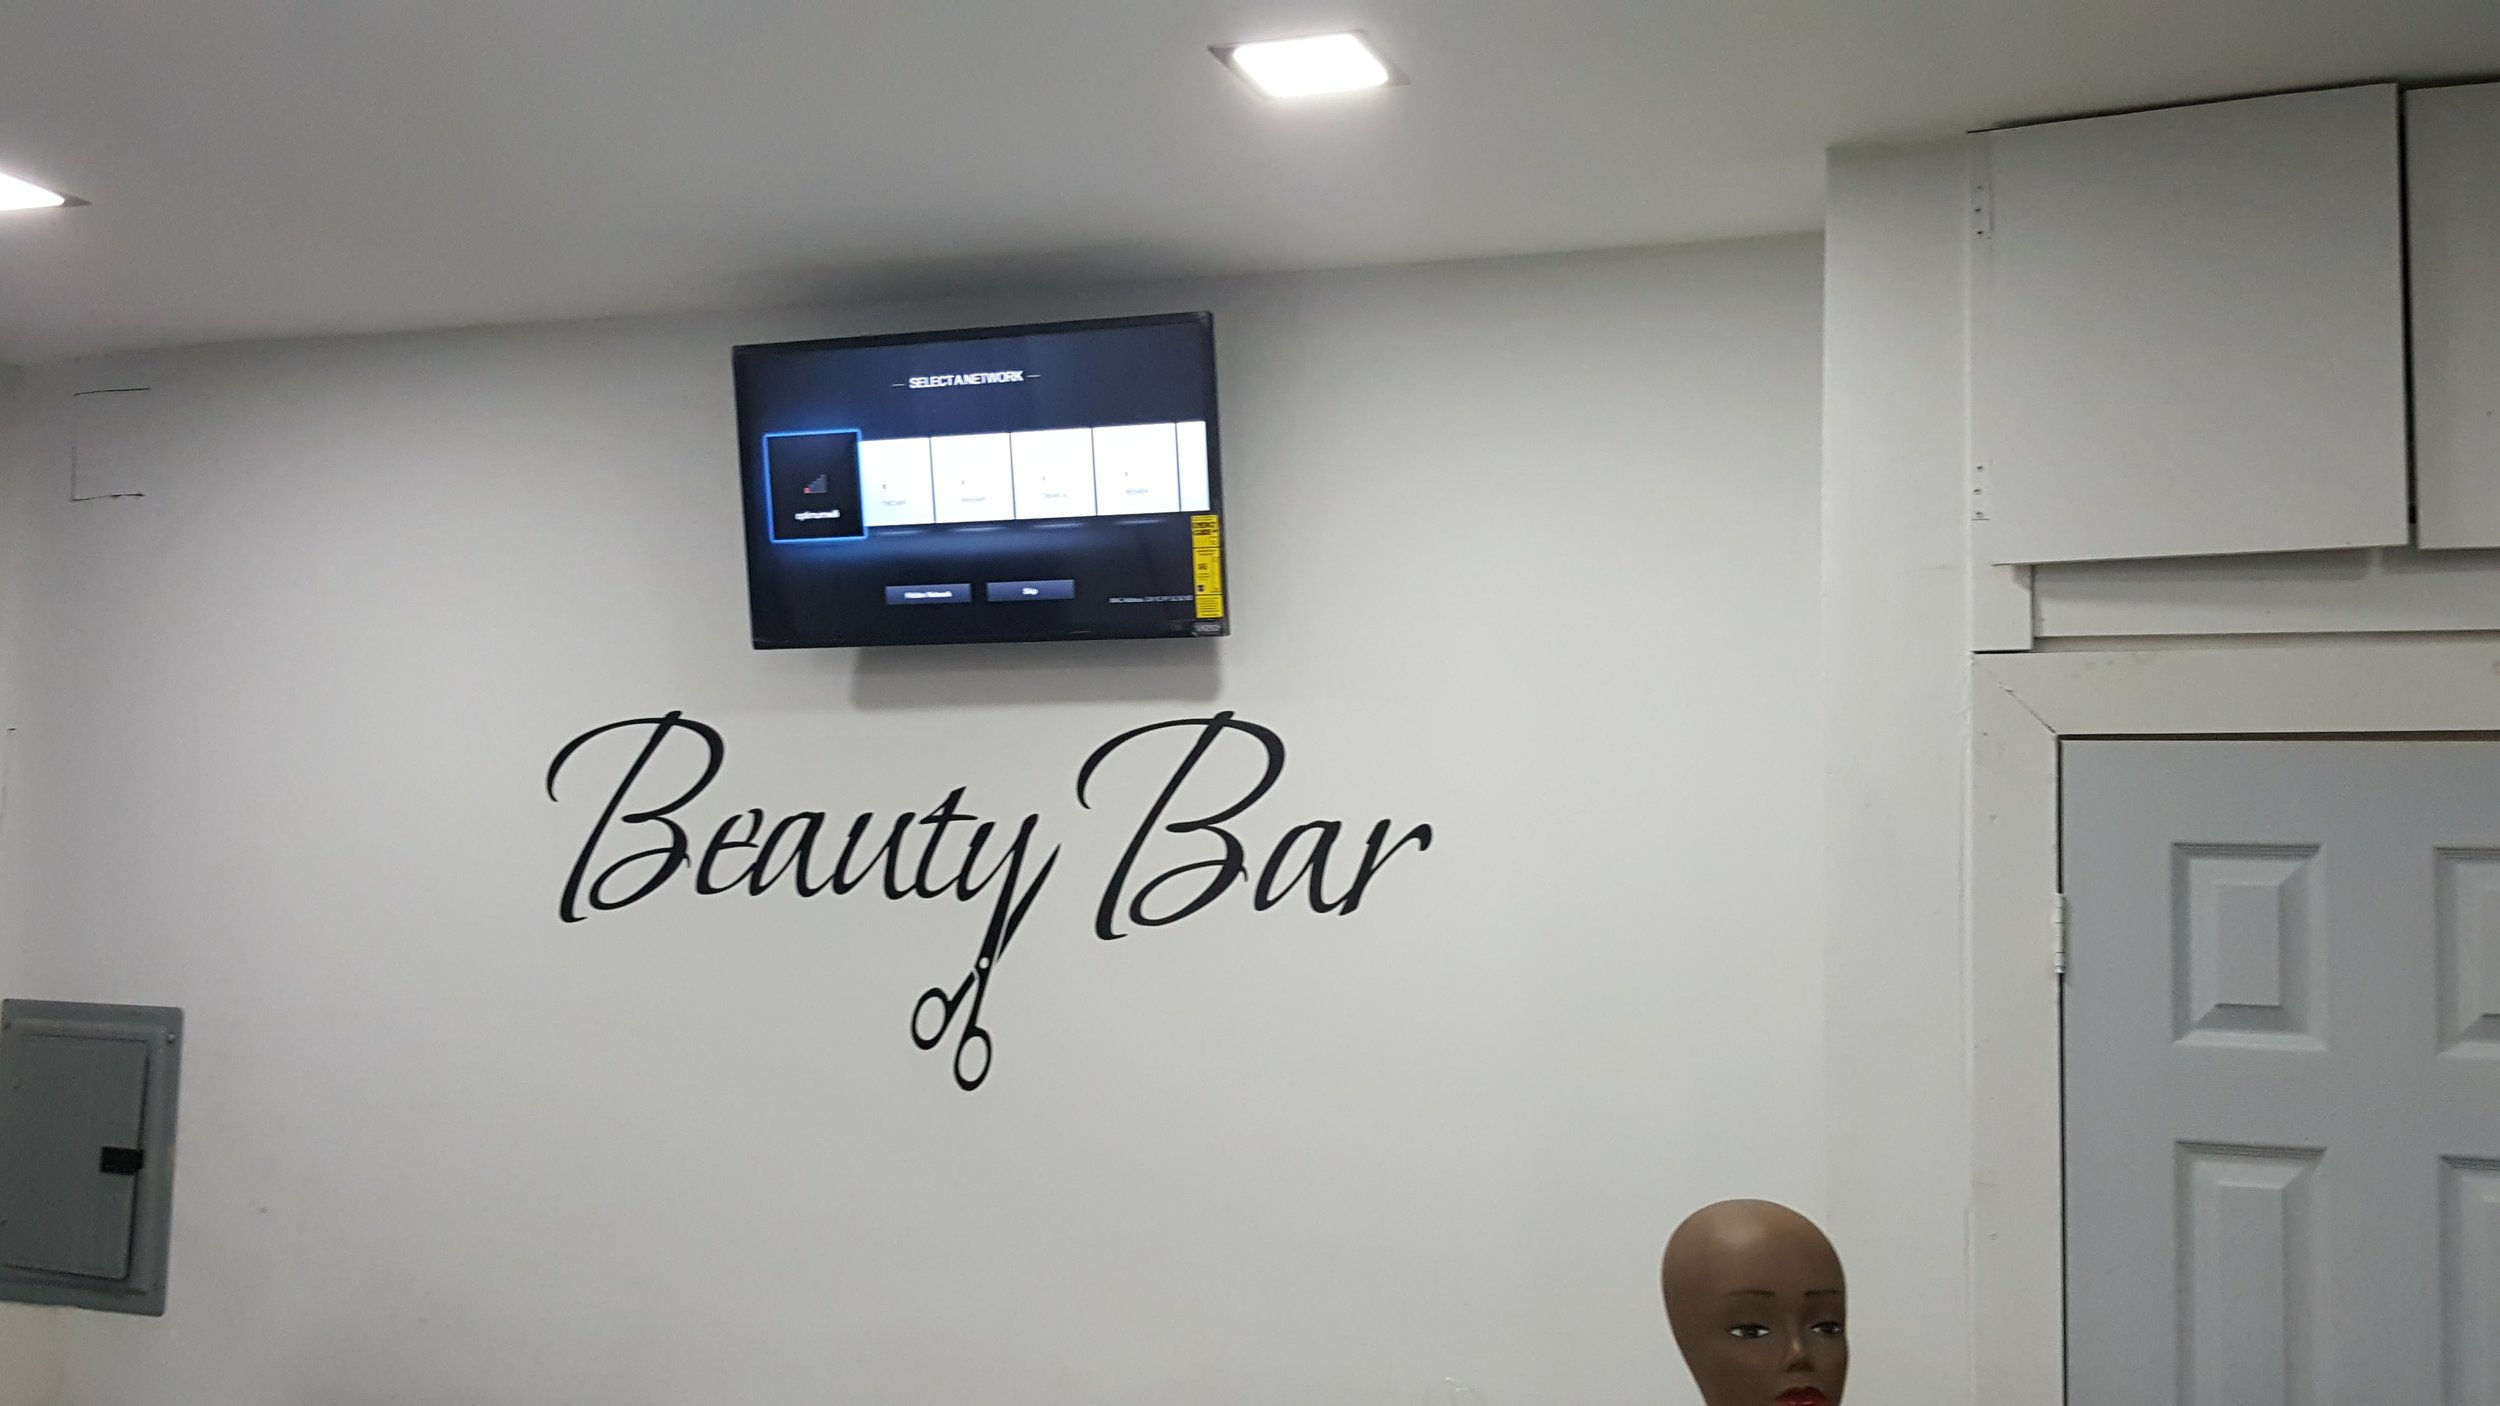 BK Beauty Bar.jpg